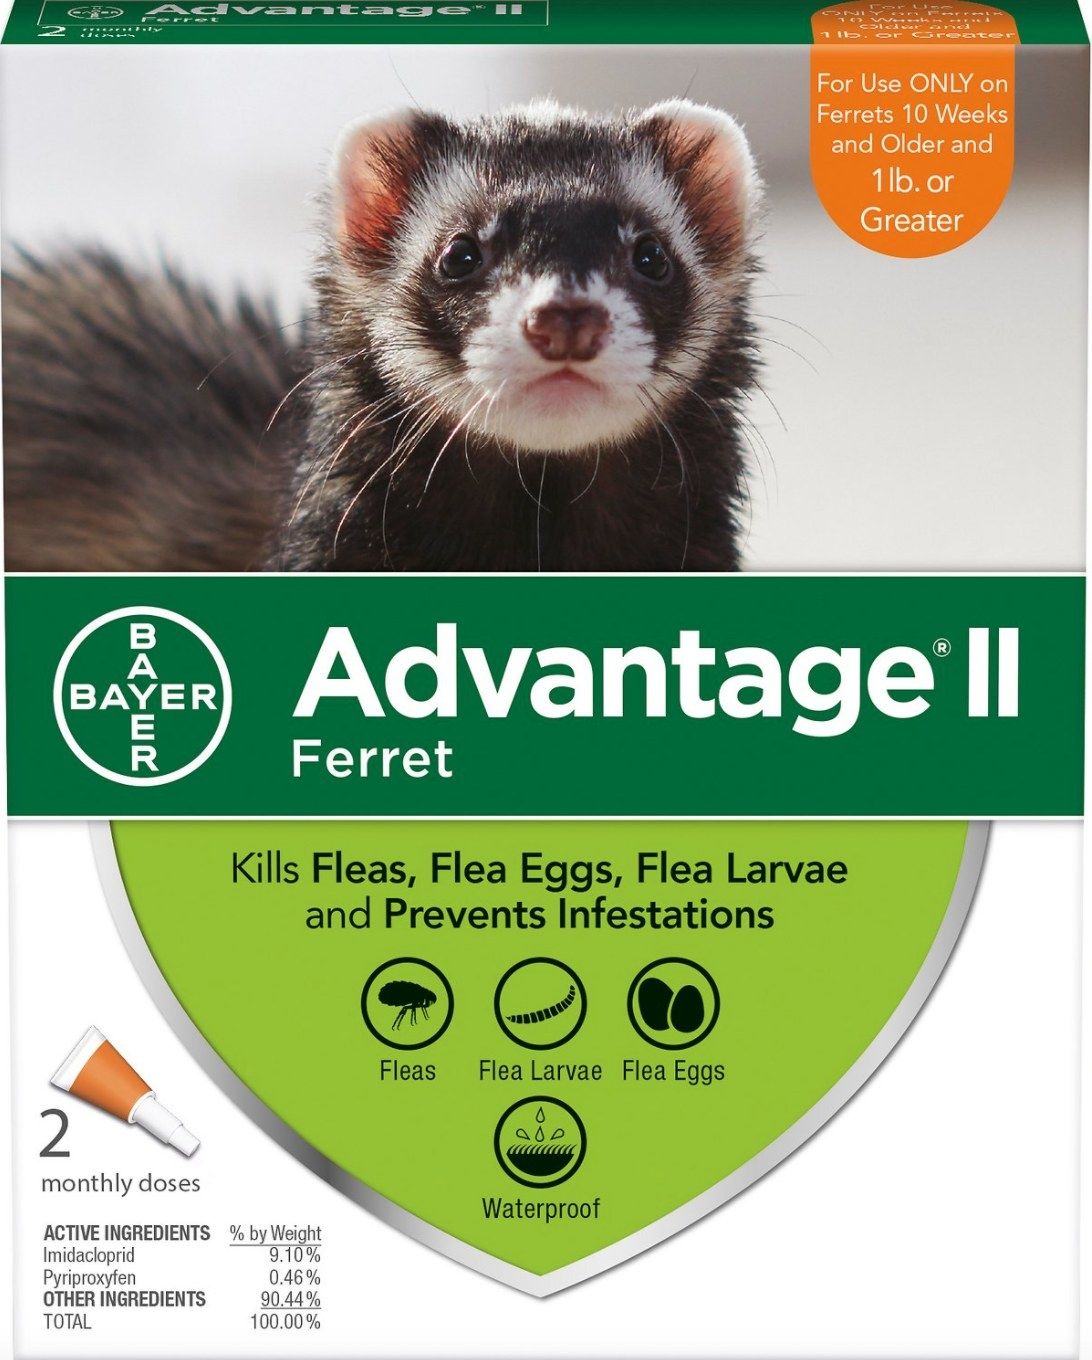 The pack of flea treatment for ferrets